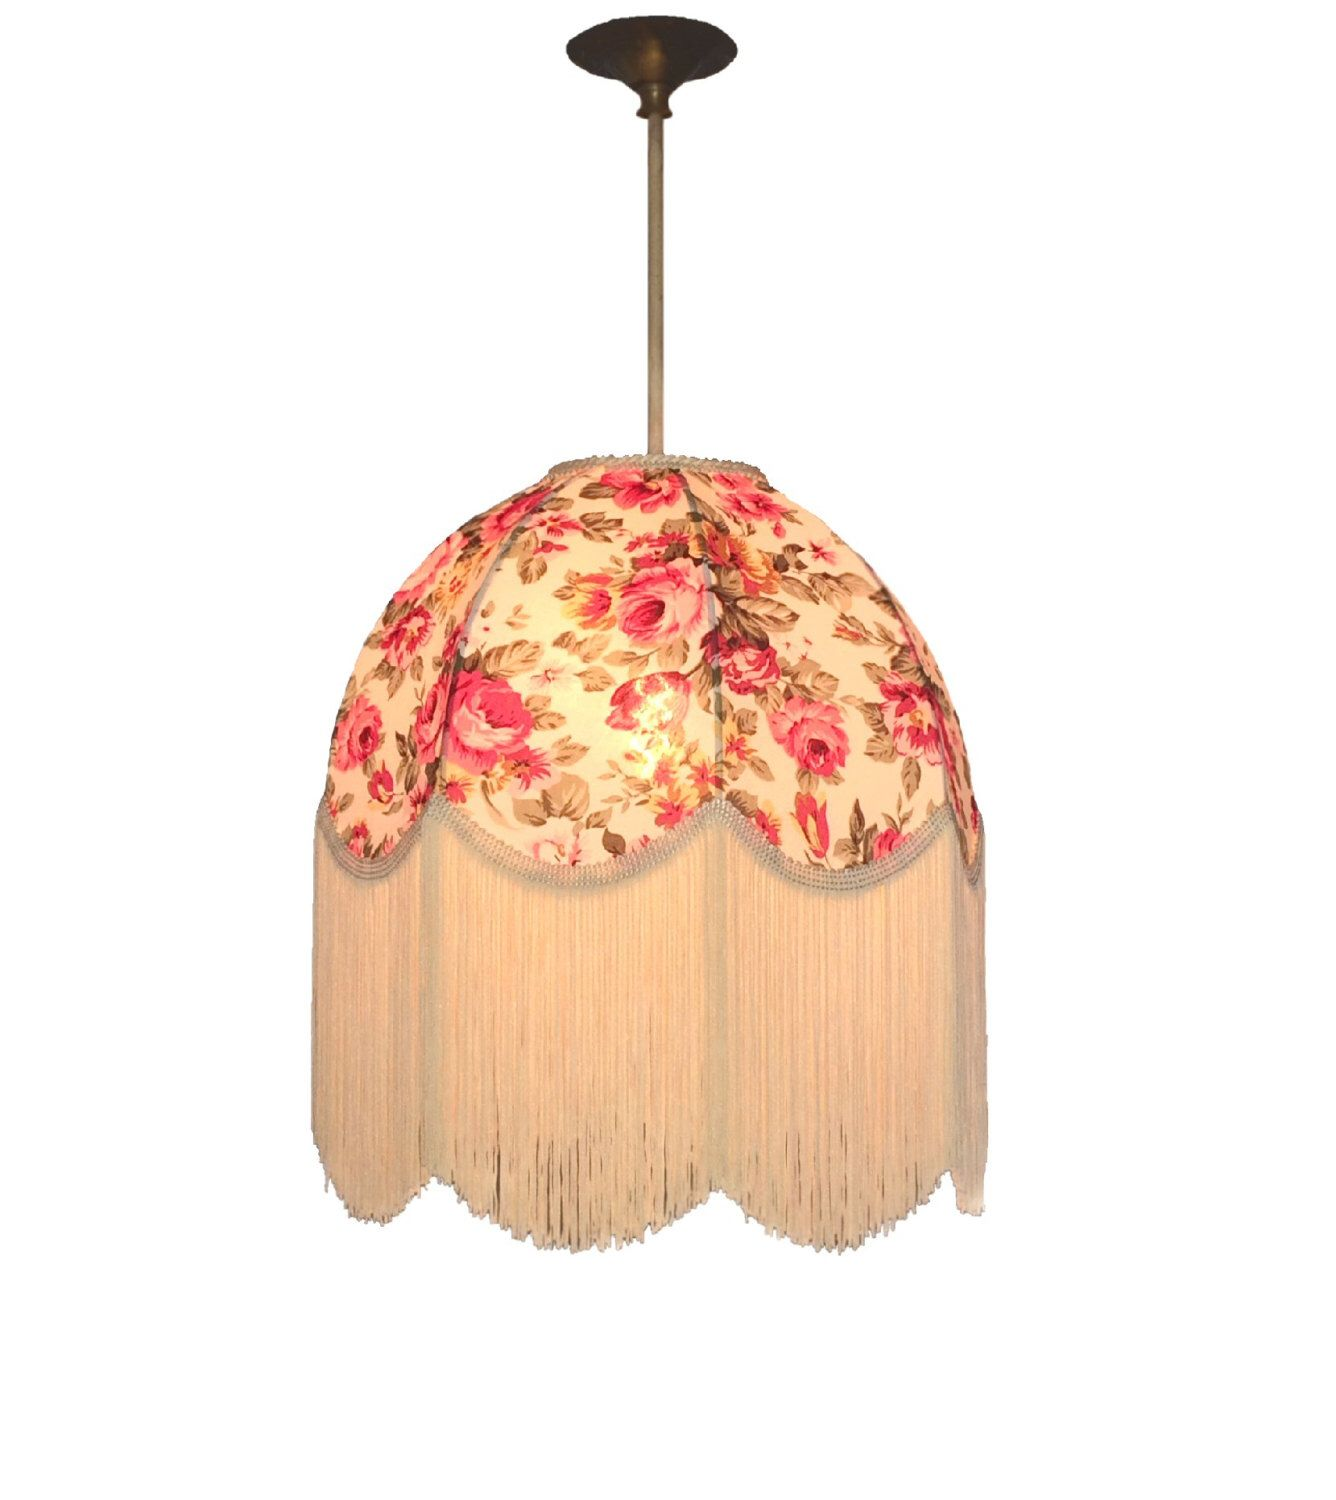 Vintage lamp floral traditional lampshade lamp shade light shade vintage lamp floral traditional lampshade lamp shade light shade ceiling pendant floor lamp design pattern rose by littlepeglamps on etsy aloadofball Choice Image